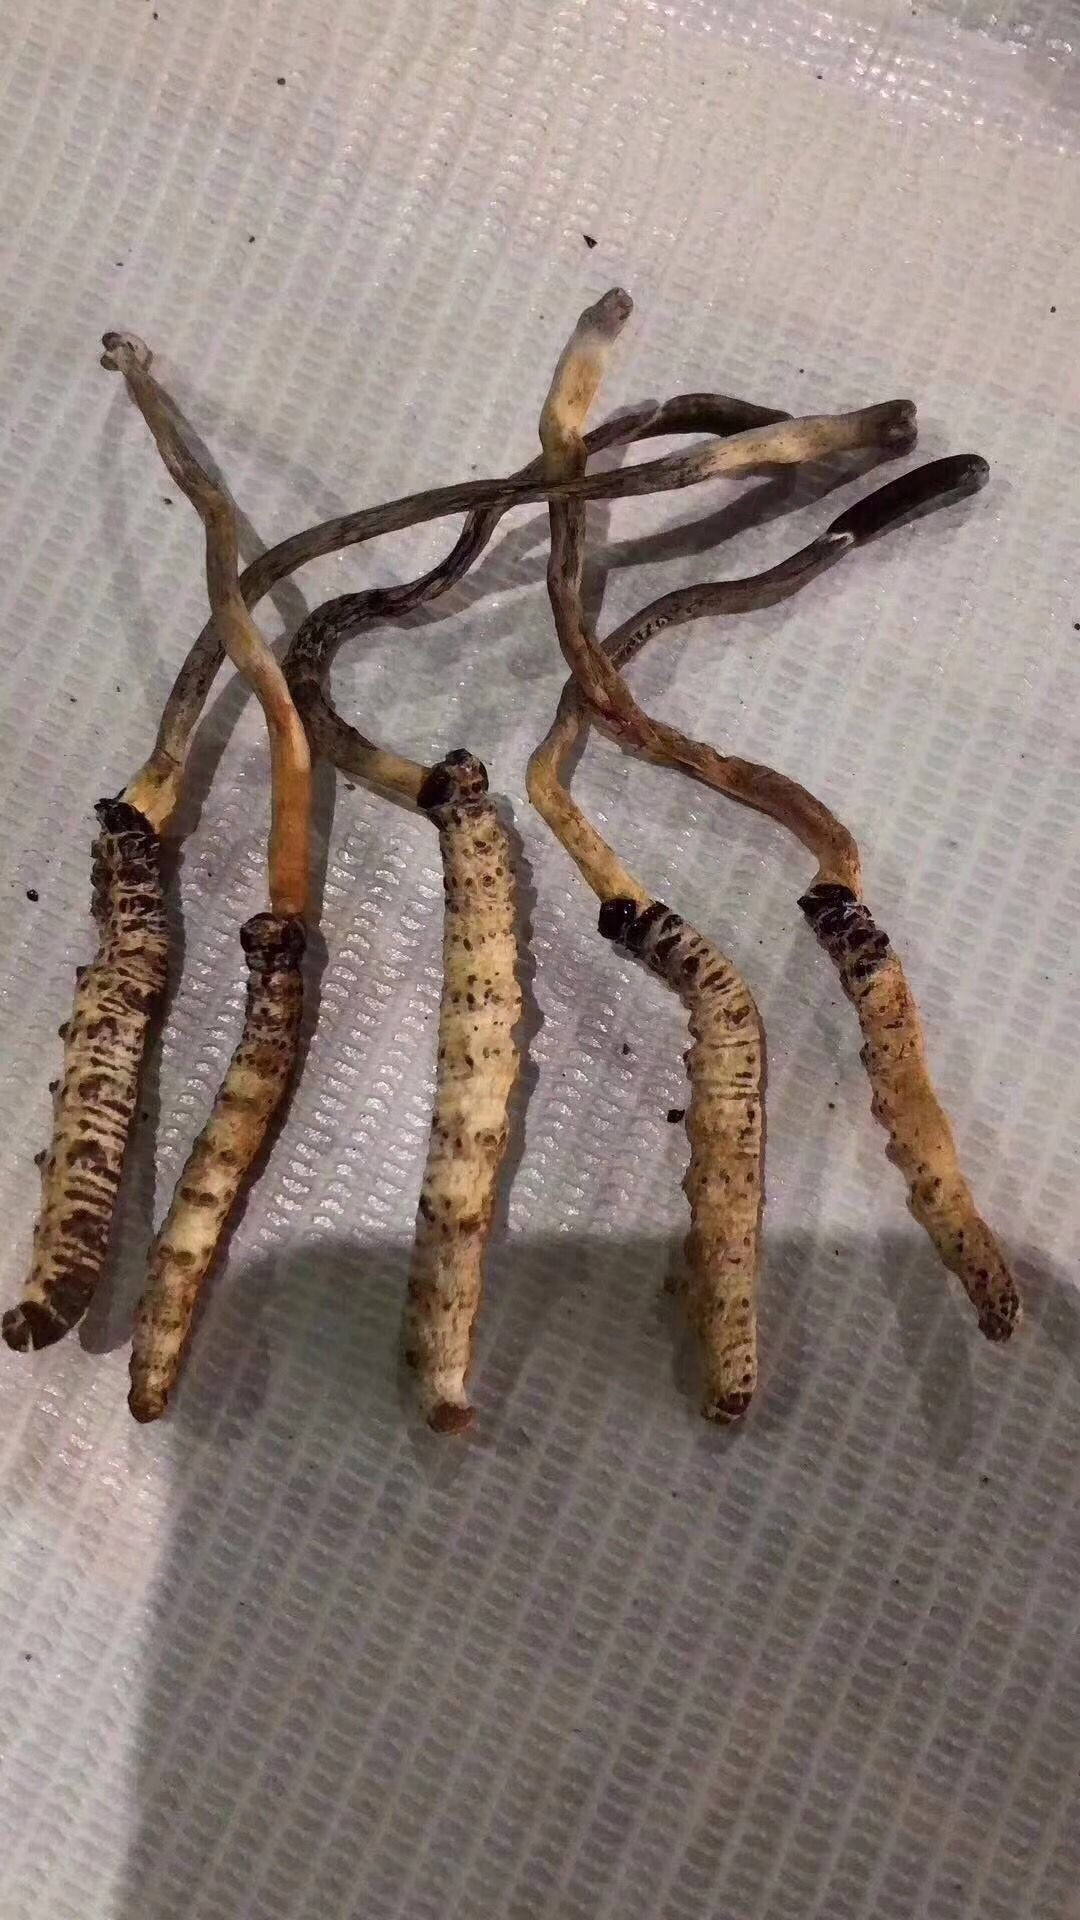 2019 dried worm grass pitch Cordyceps wholesale Cordyceps Express